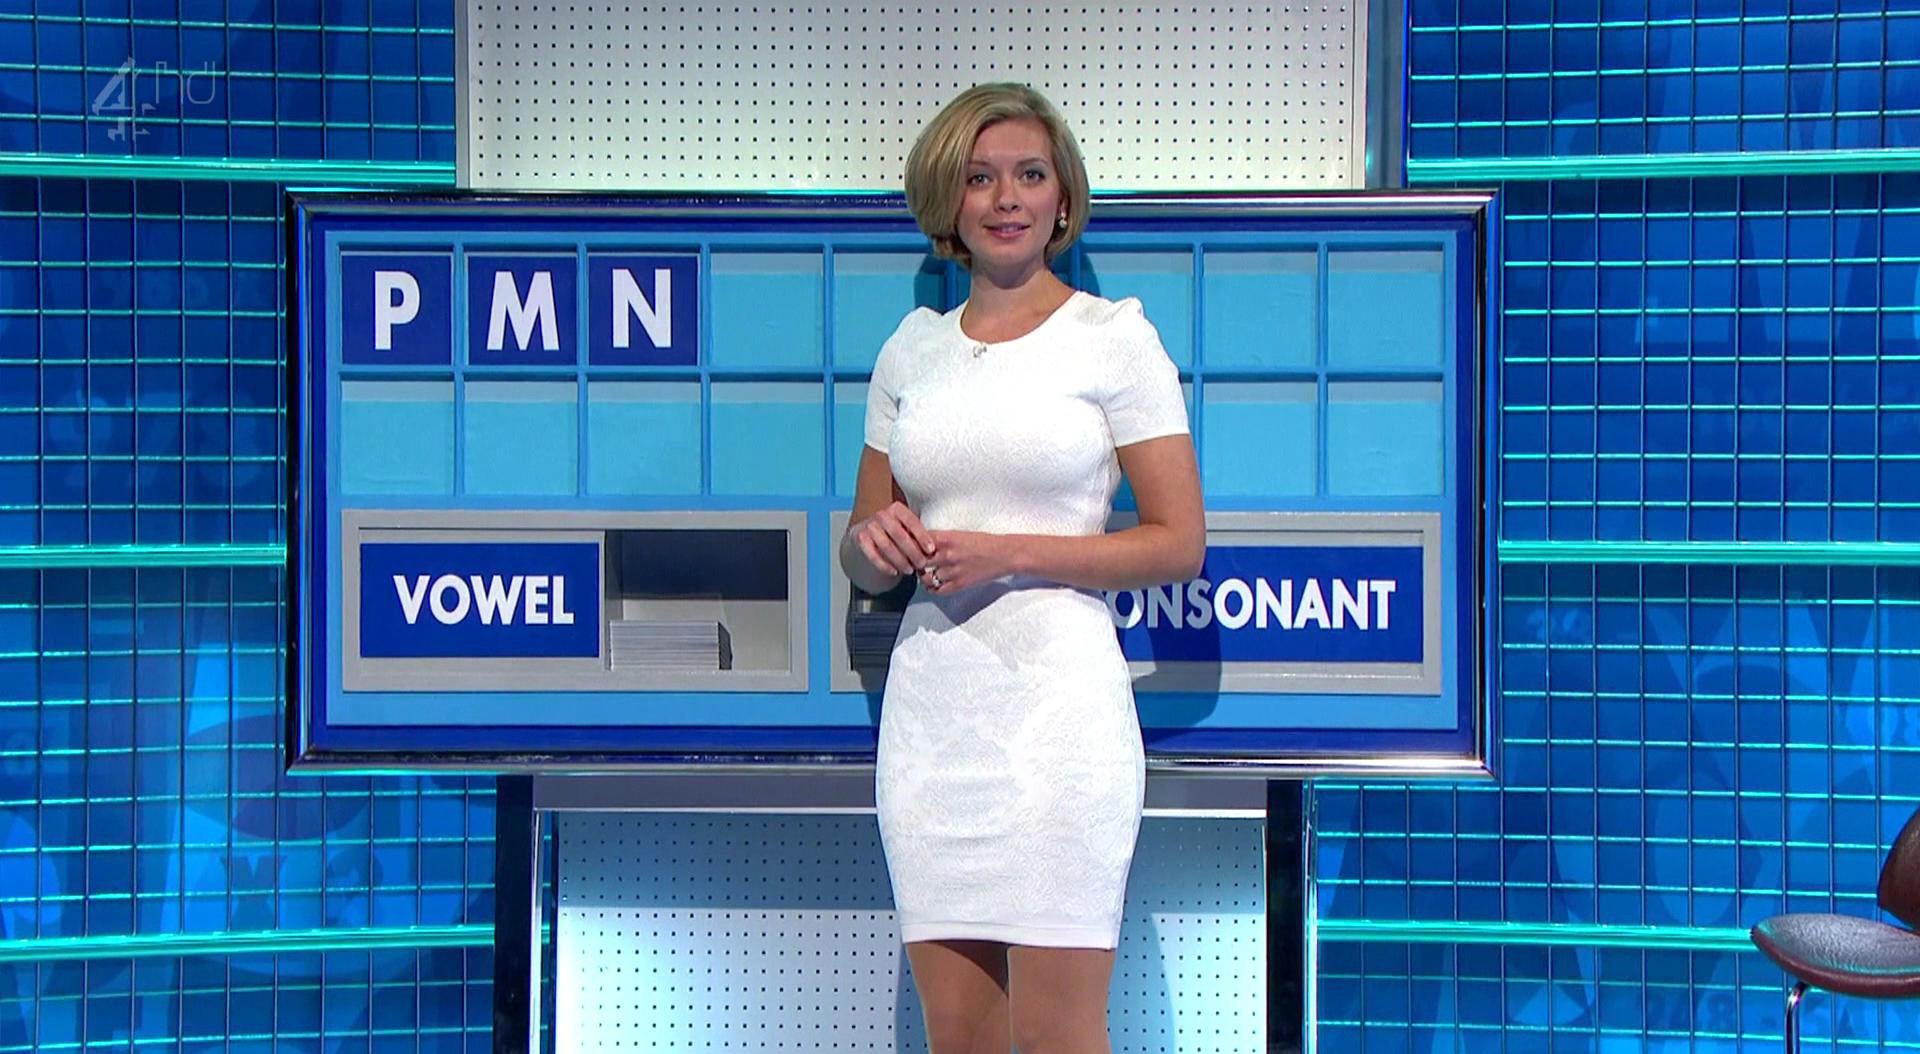 rachel-riley-hot-images